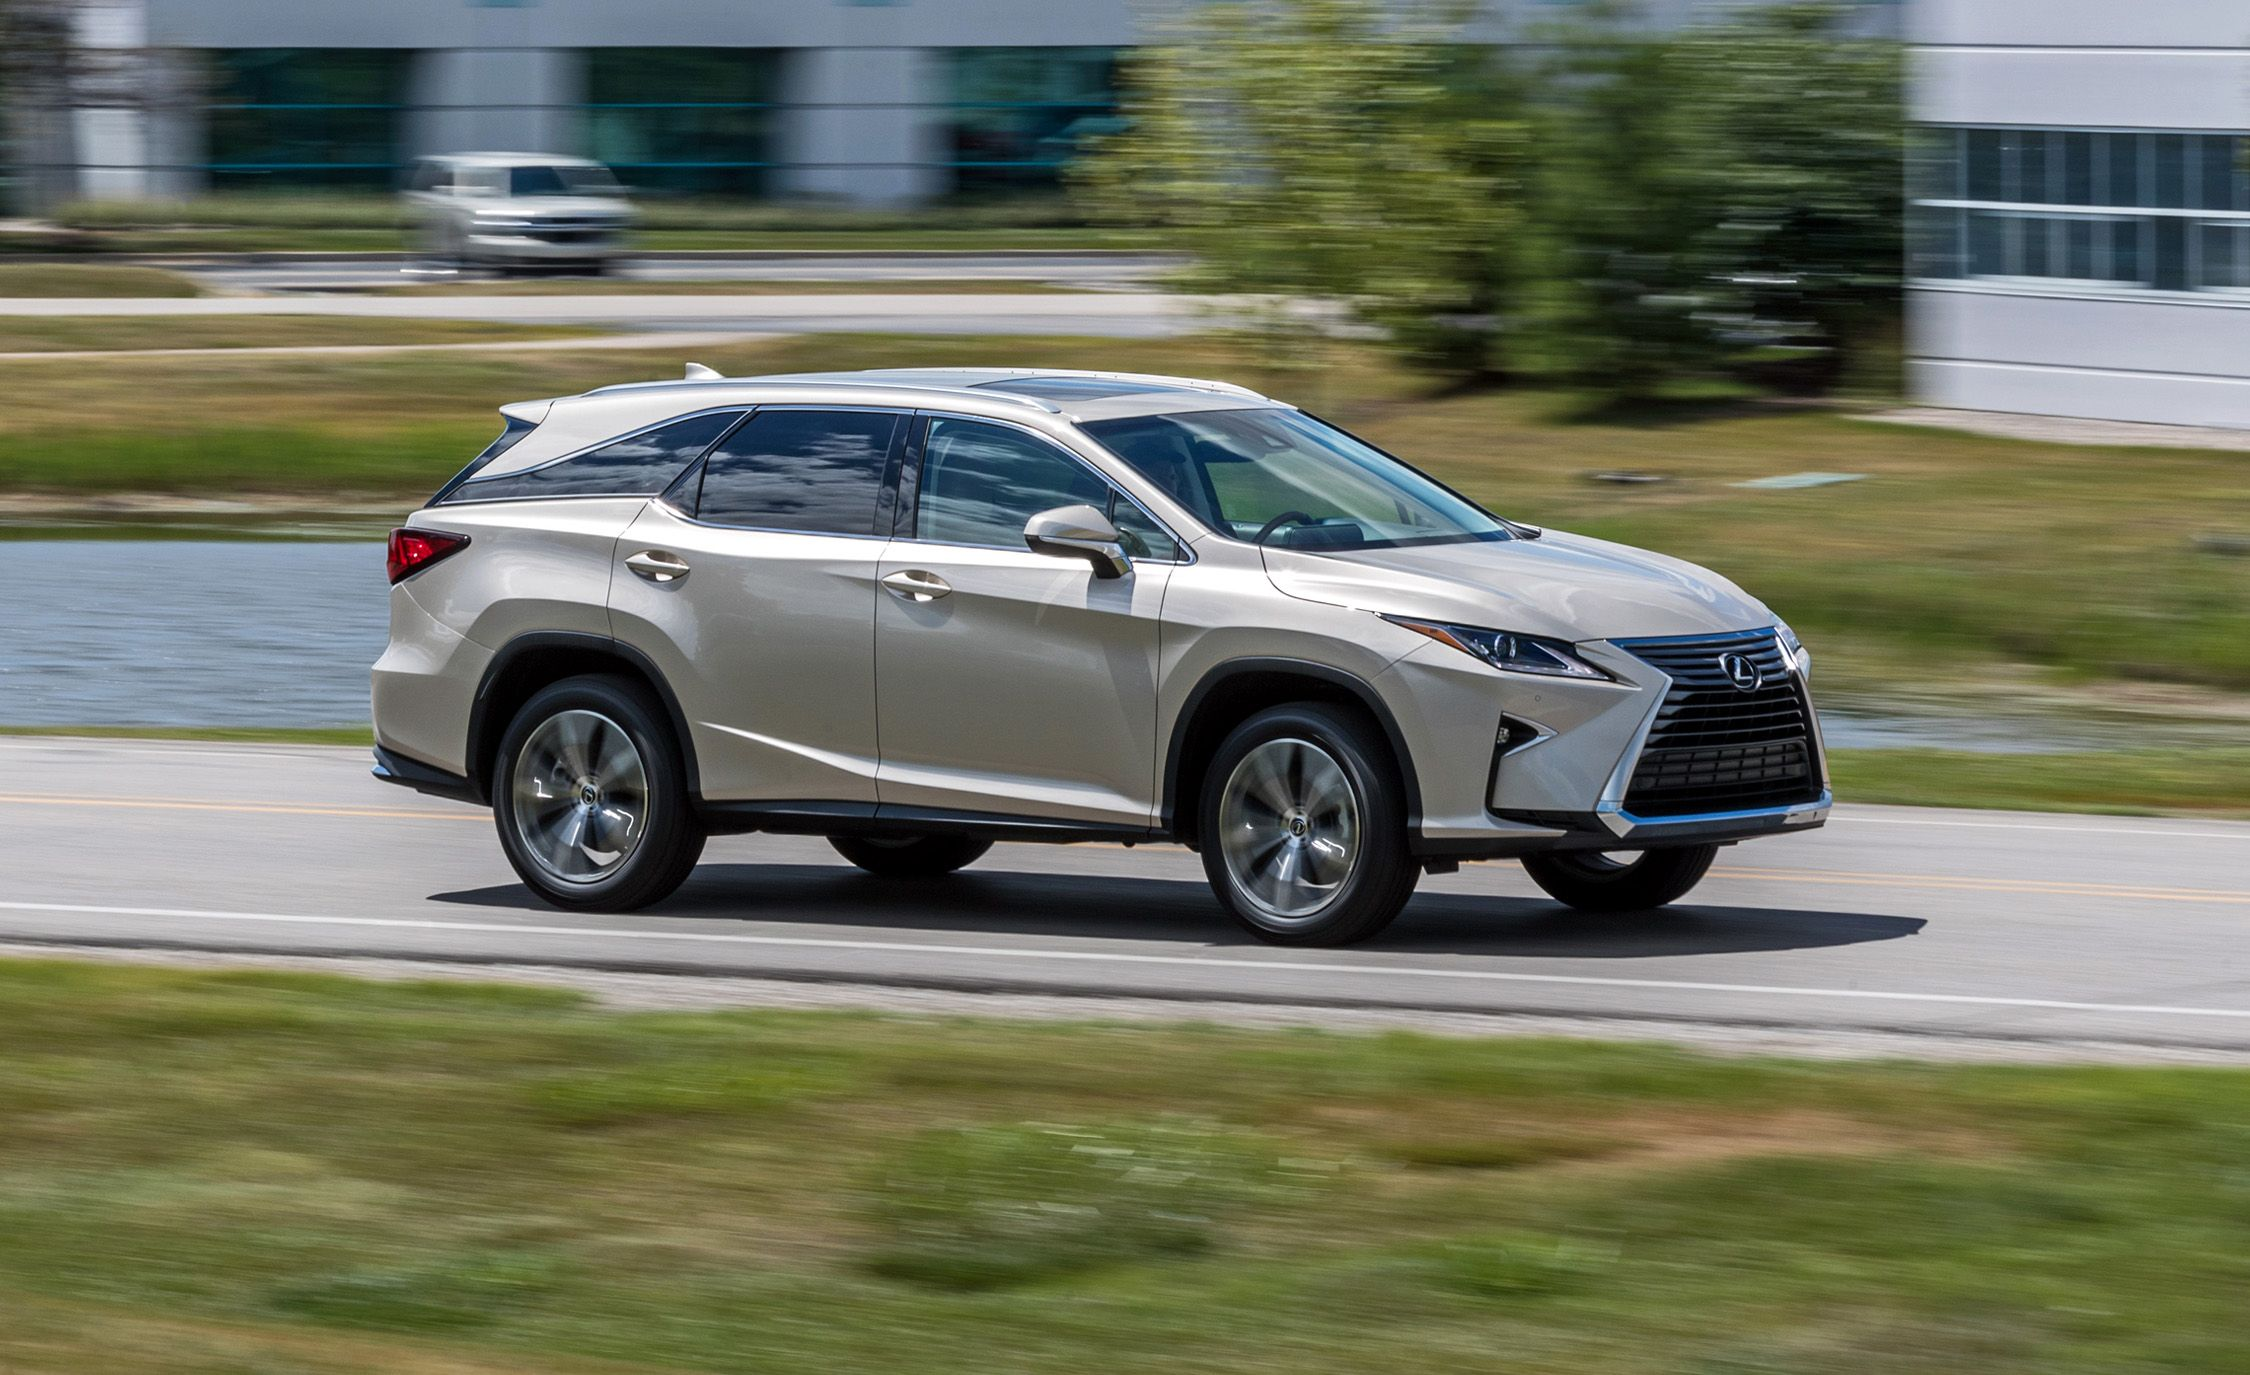 Lexus RX Reviews Lexus RX Price Photos And Specs Car And Driver - Lexus rx 350 invoice price 2018